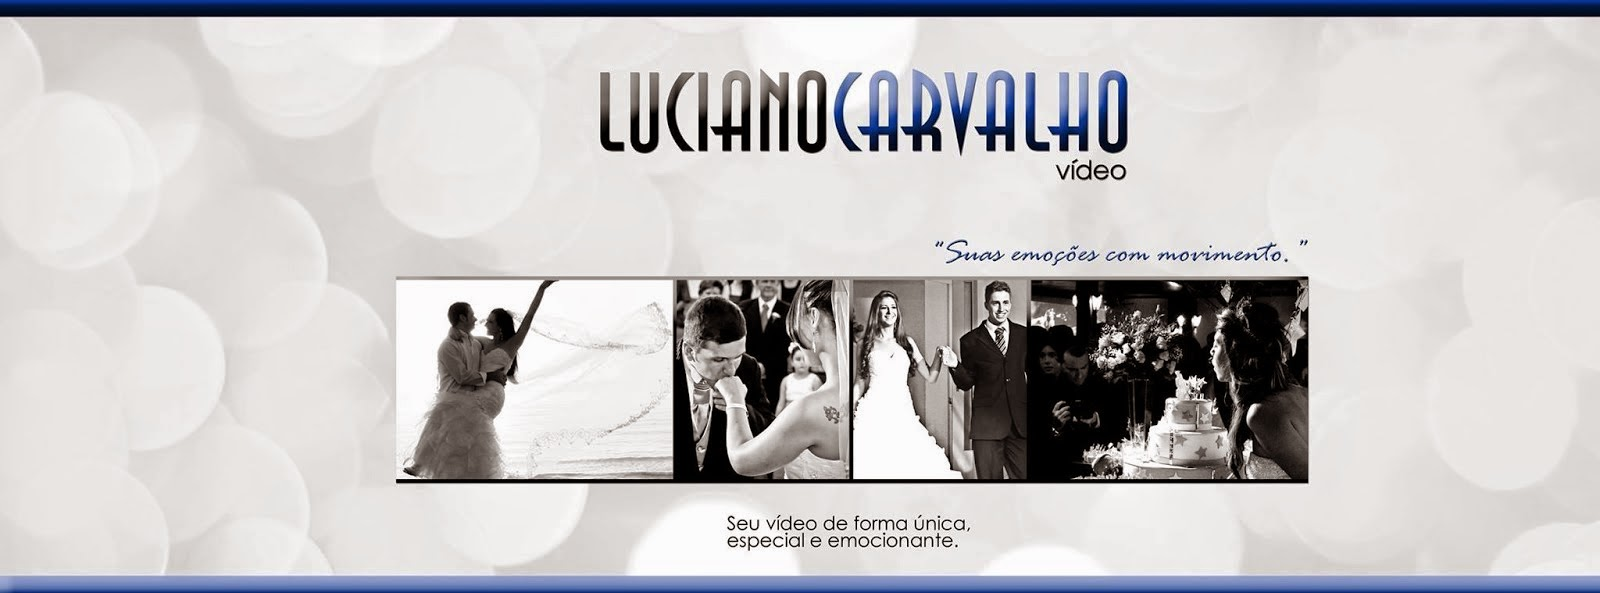 Luciano Carvalho video